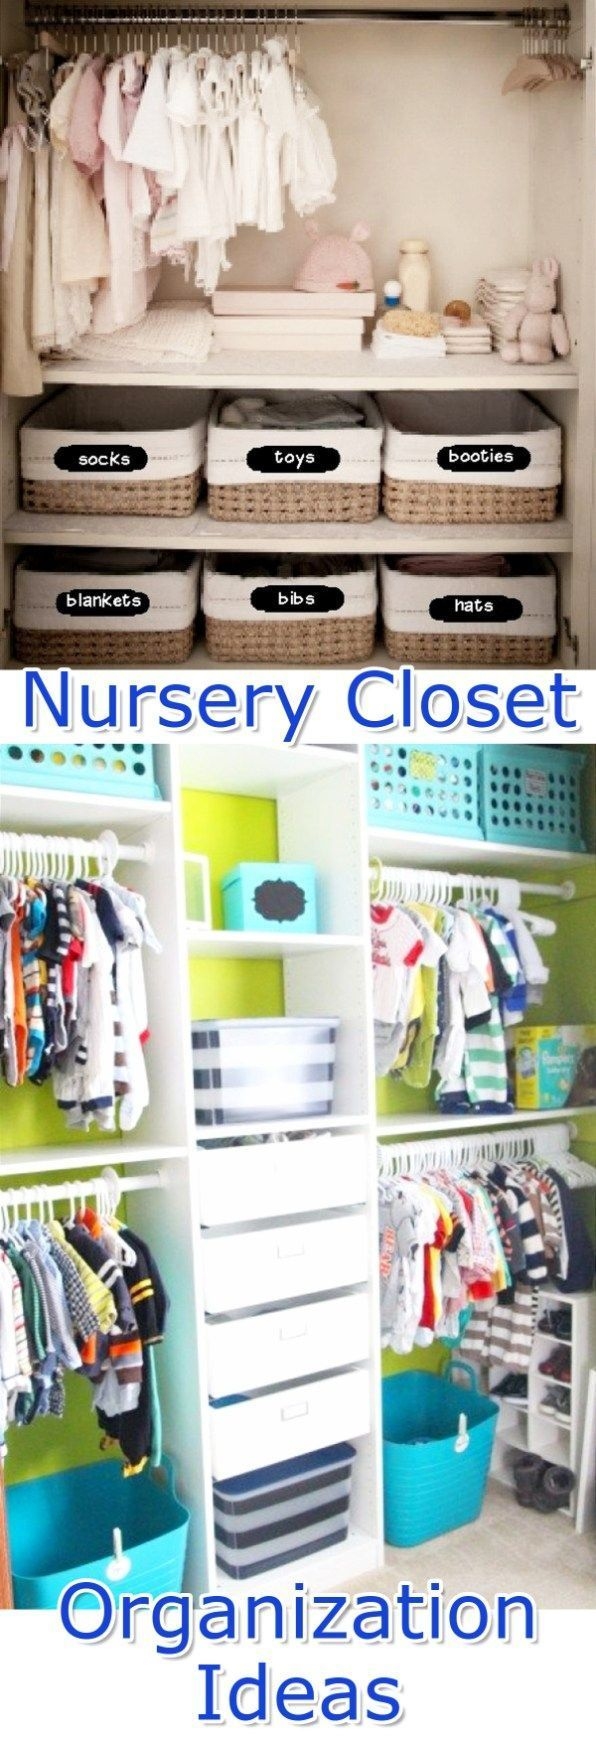 Baby Closet Organization Ideas - How To Organize the Baby Closet - DIY Nursery Closet Organization Ideas #organizationideas